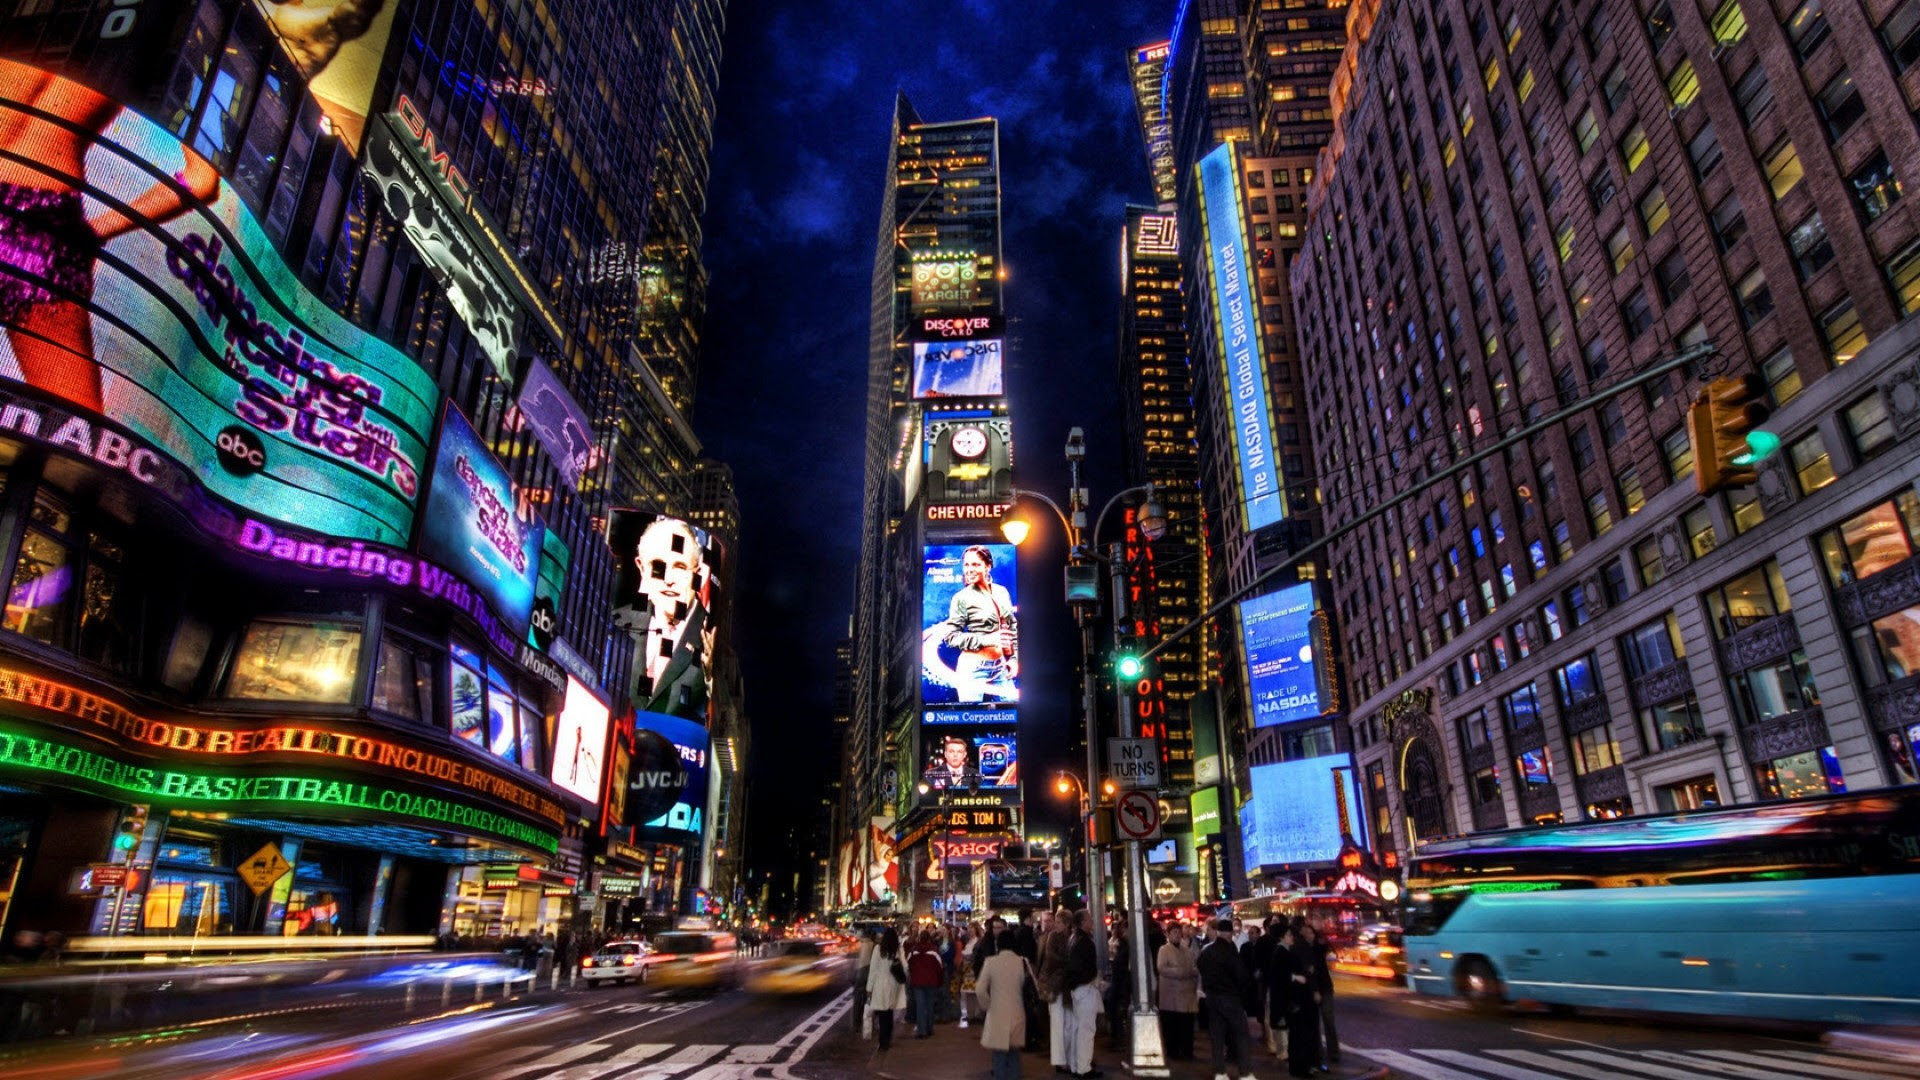 Times Square Wallpaper 58 Images